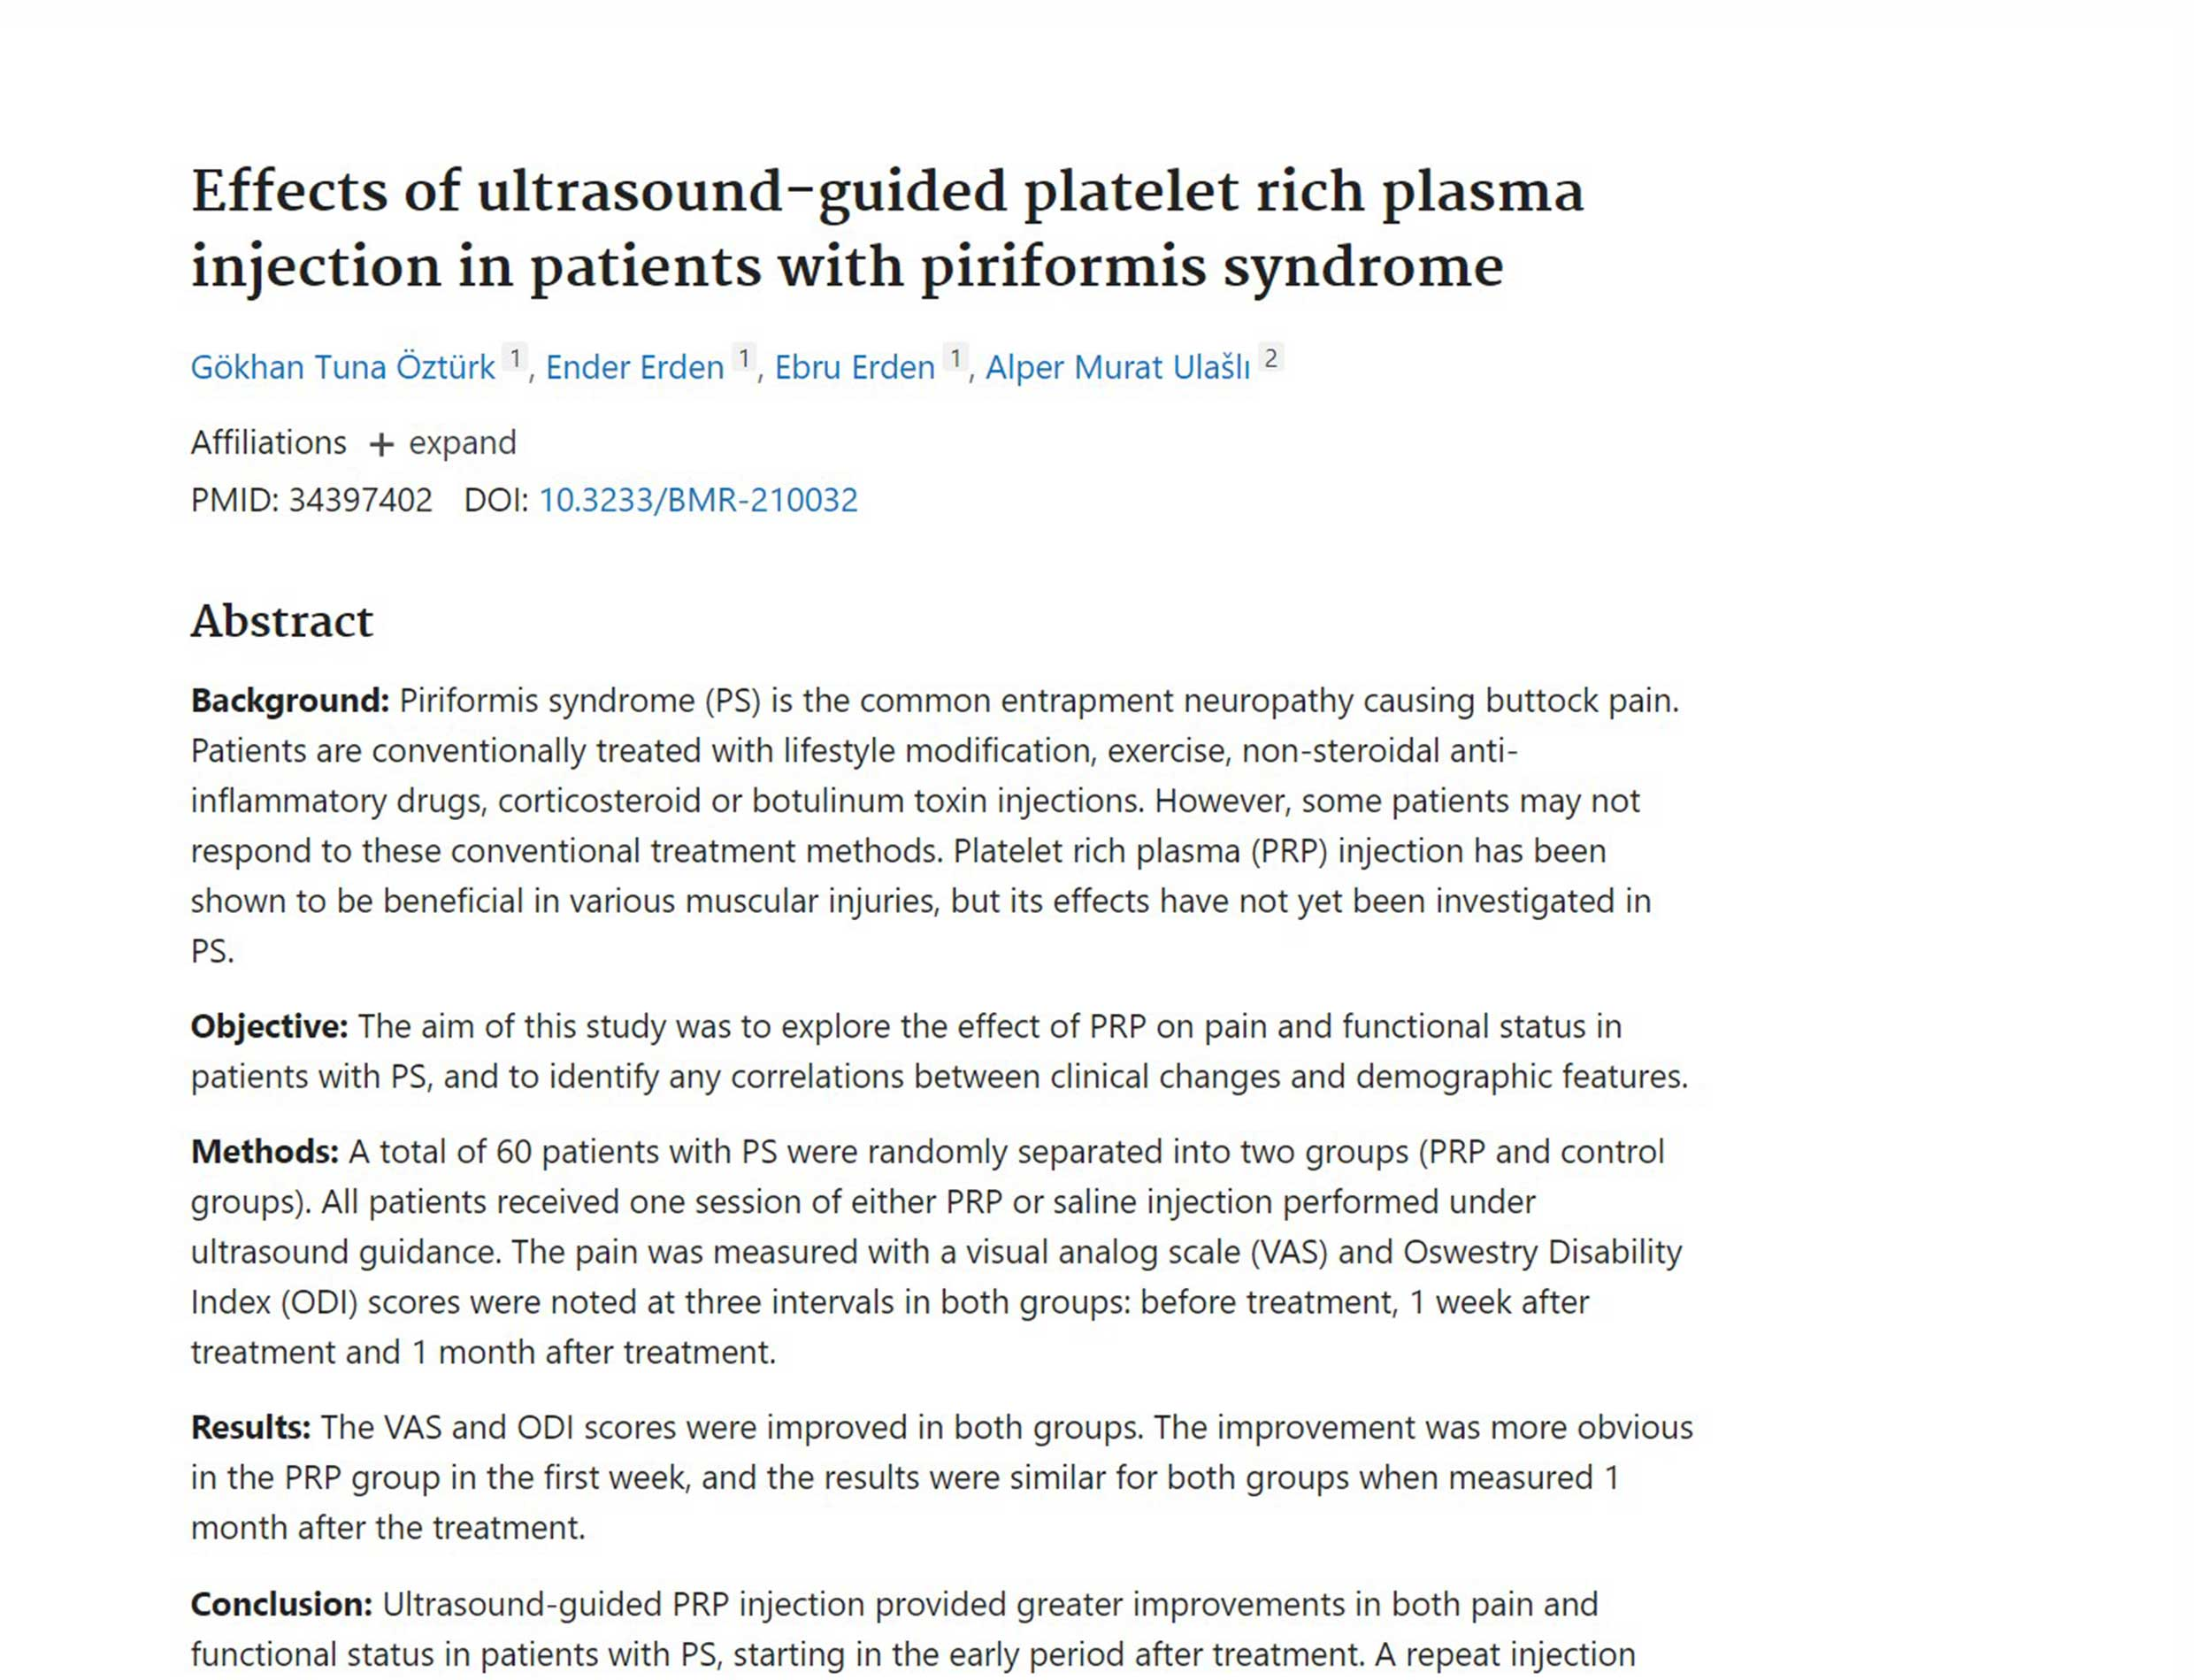 Effects of ultrasound-guided platelet rich plasma injection in patients with piriformis syndrome